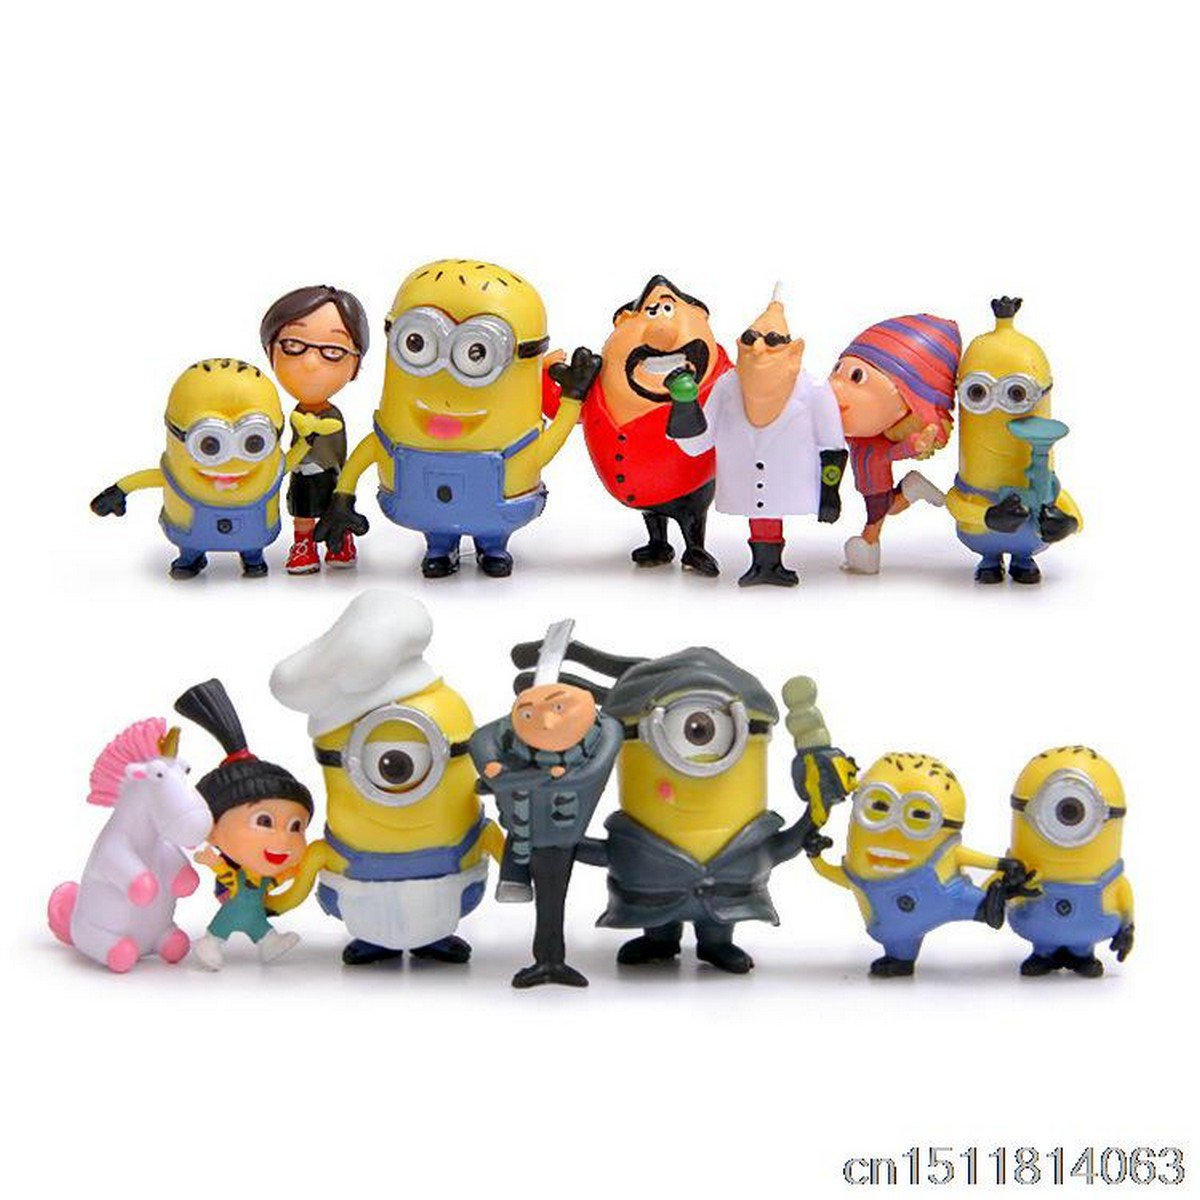 Buy Hot!14Pcs Fashion Cartoon Anime Despicable Me 2 Minions Decoration Toy 3D Eye Mini Moive Action